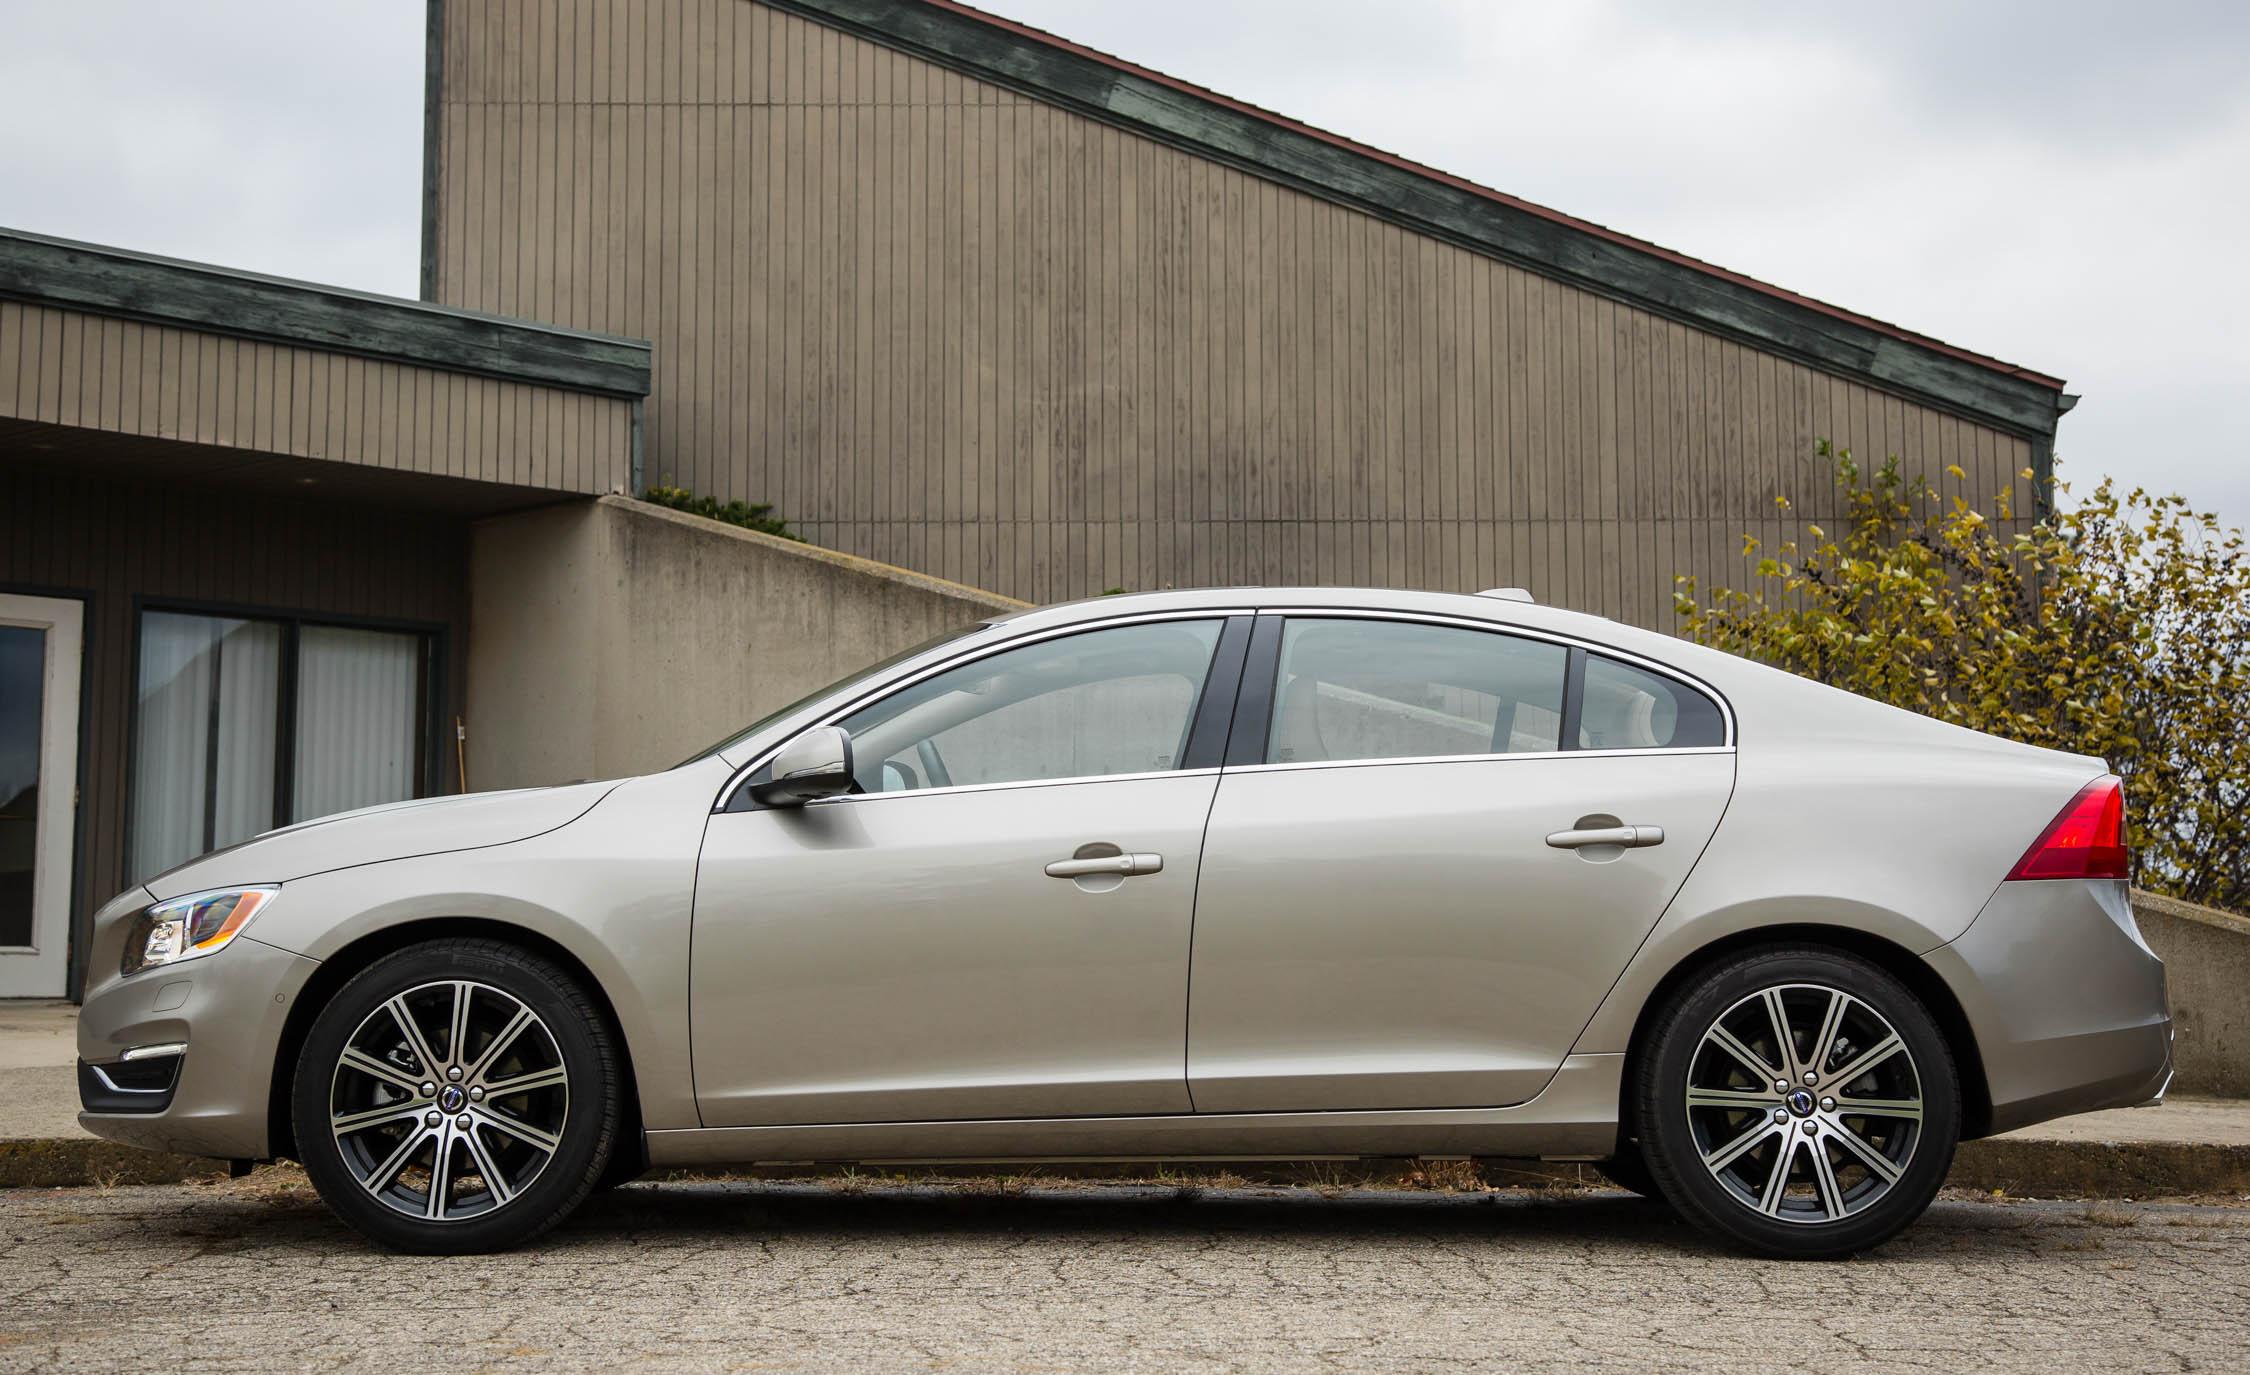 Elegant 2016 Volvo S60 Inscription Review 8922  Cars Performance